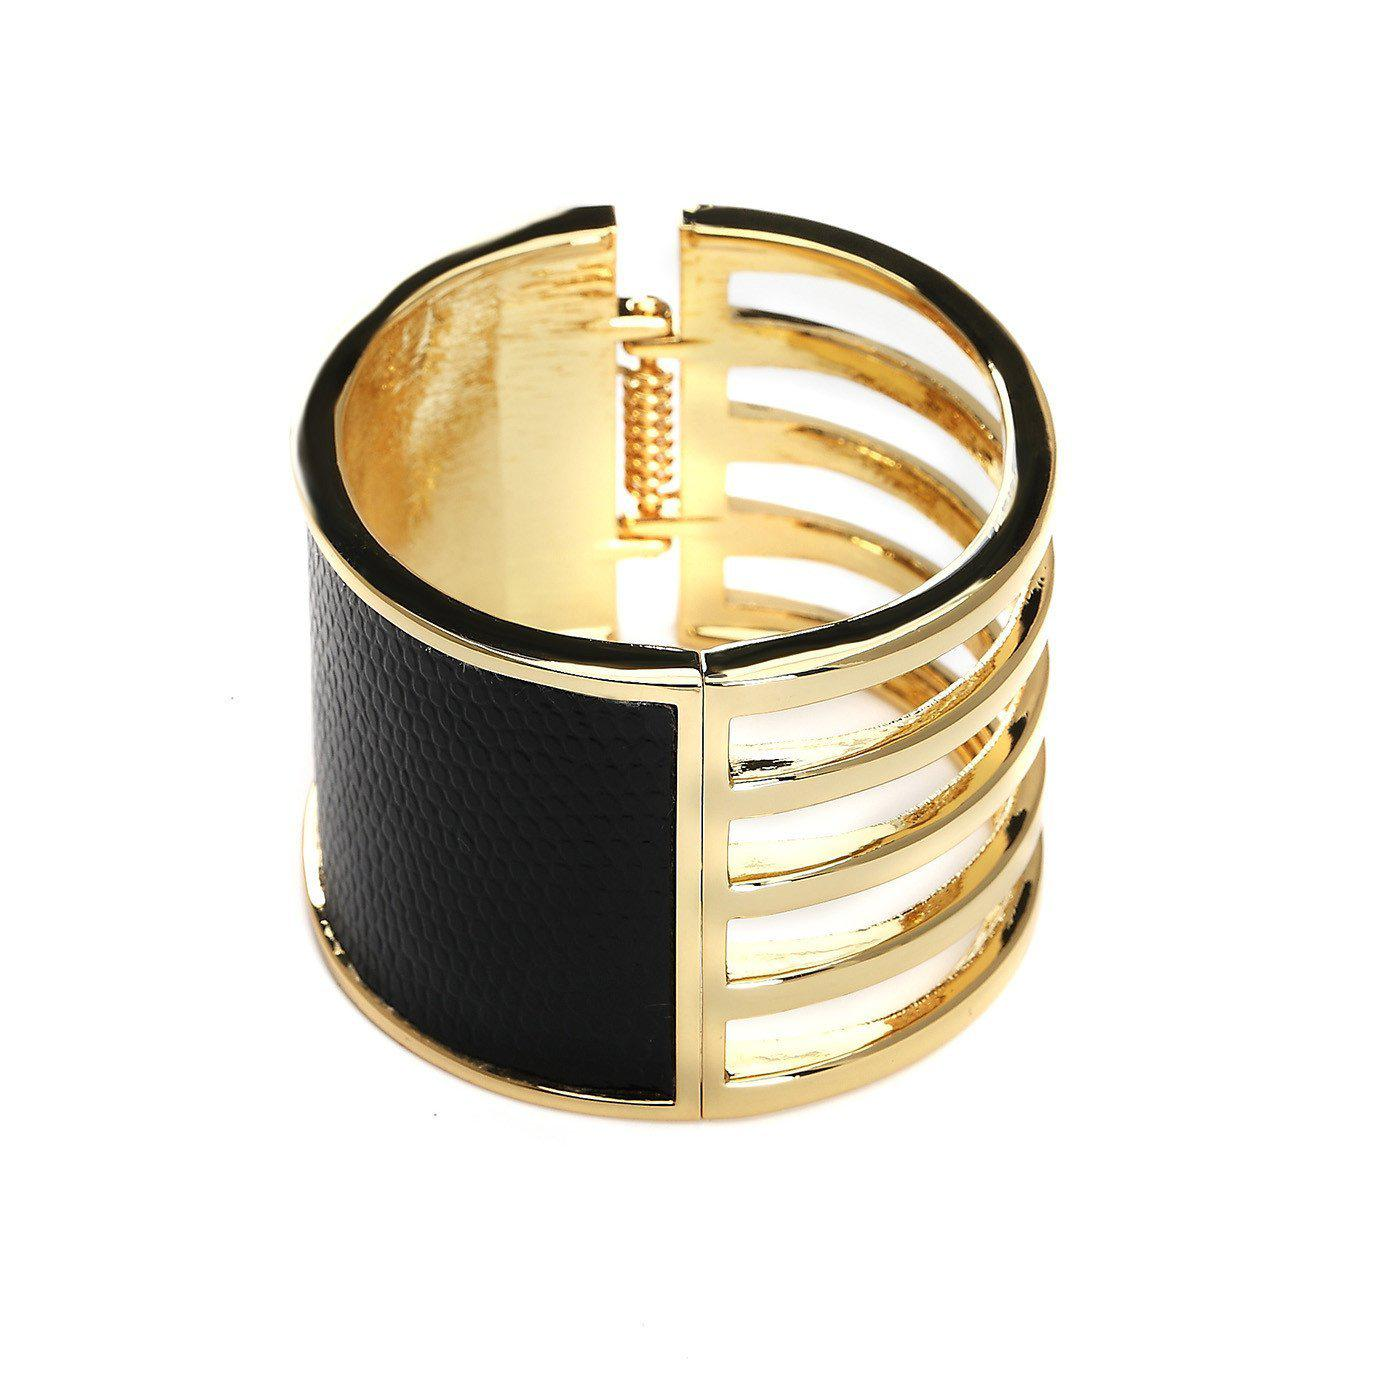 Concentric Glamour High Fashion Cuff-Blinglane